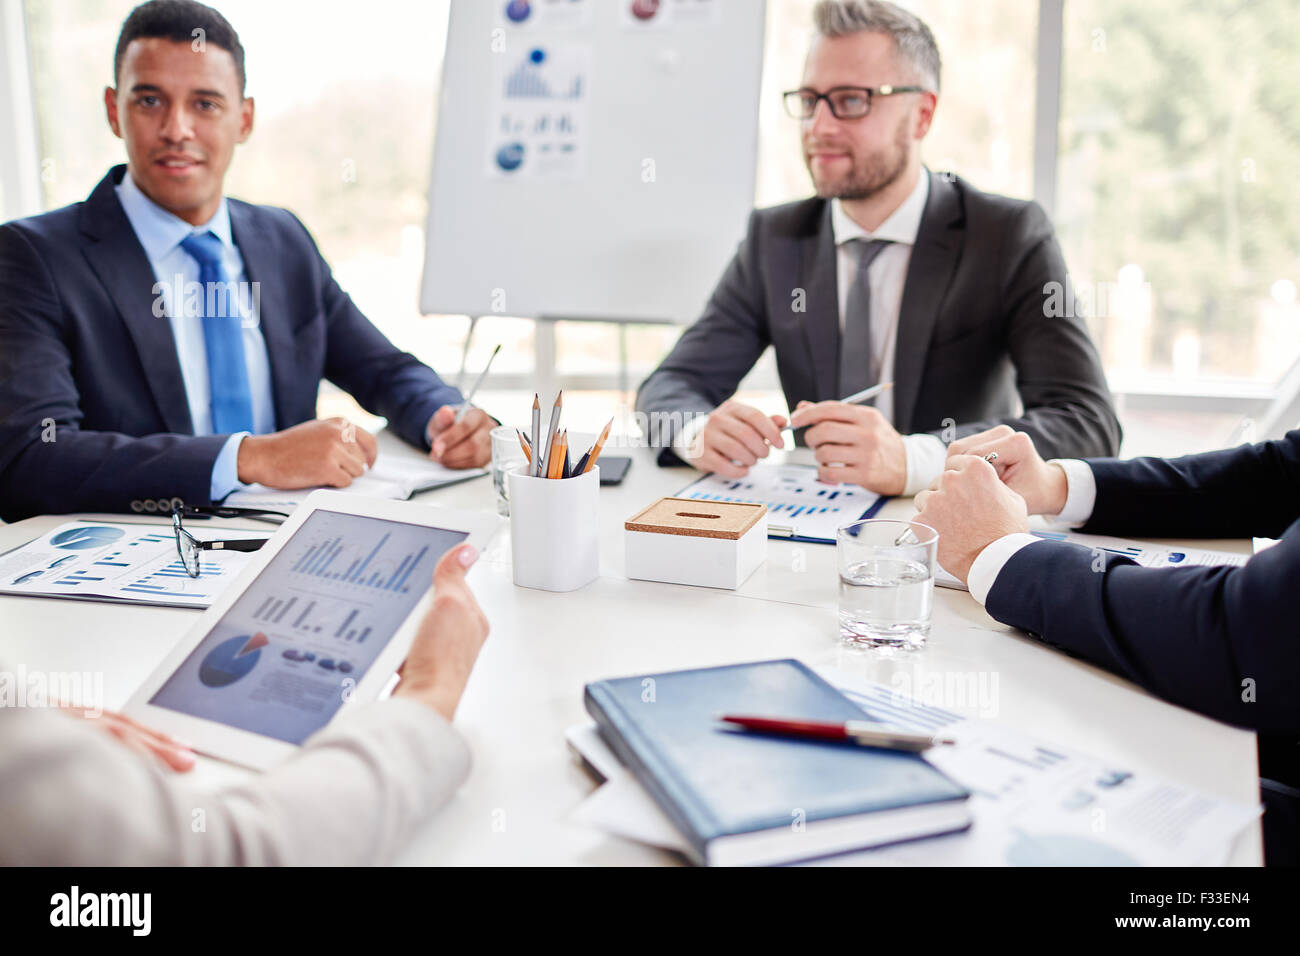 Business team gathered by workplace for consultation - Stock Image